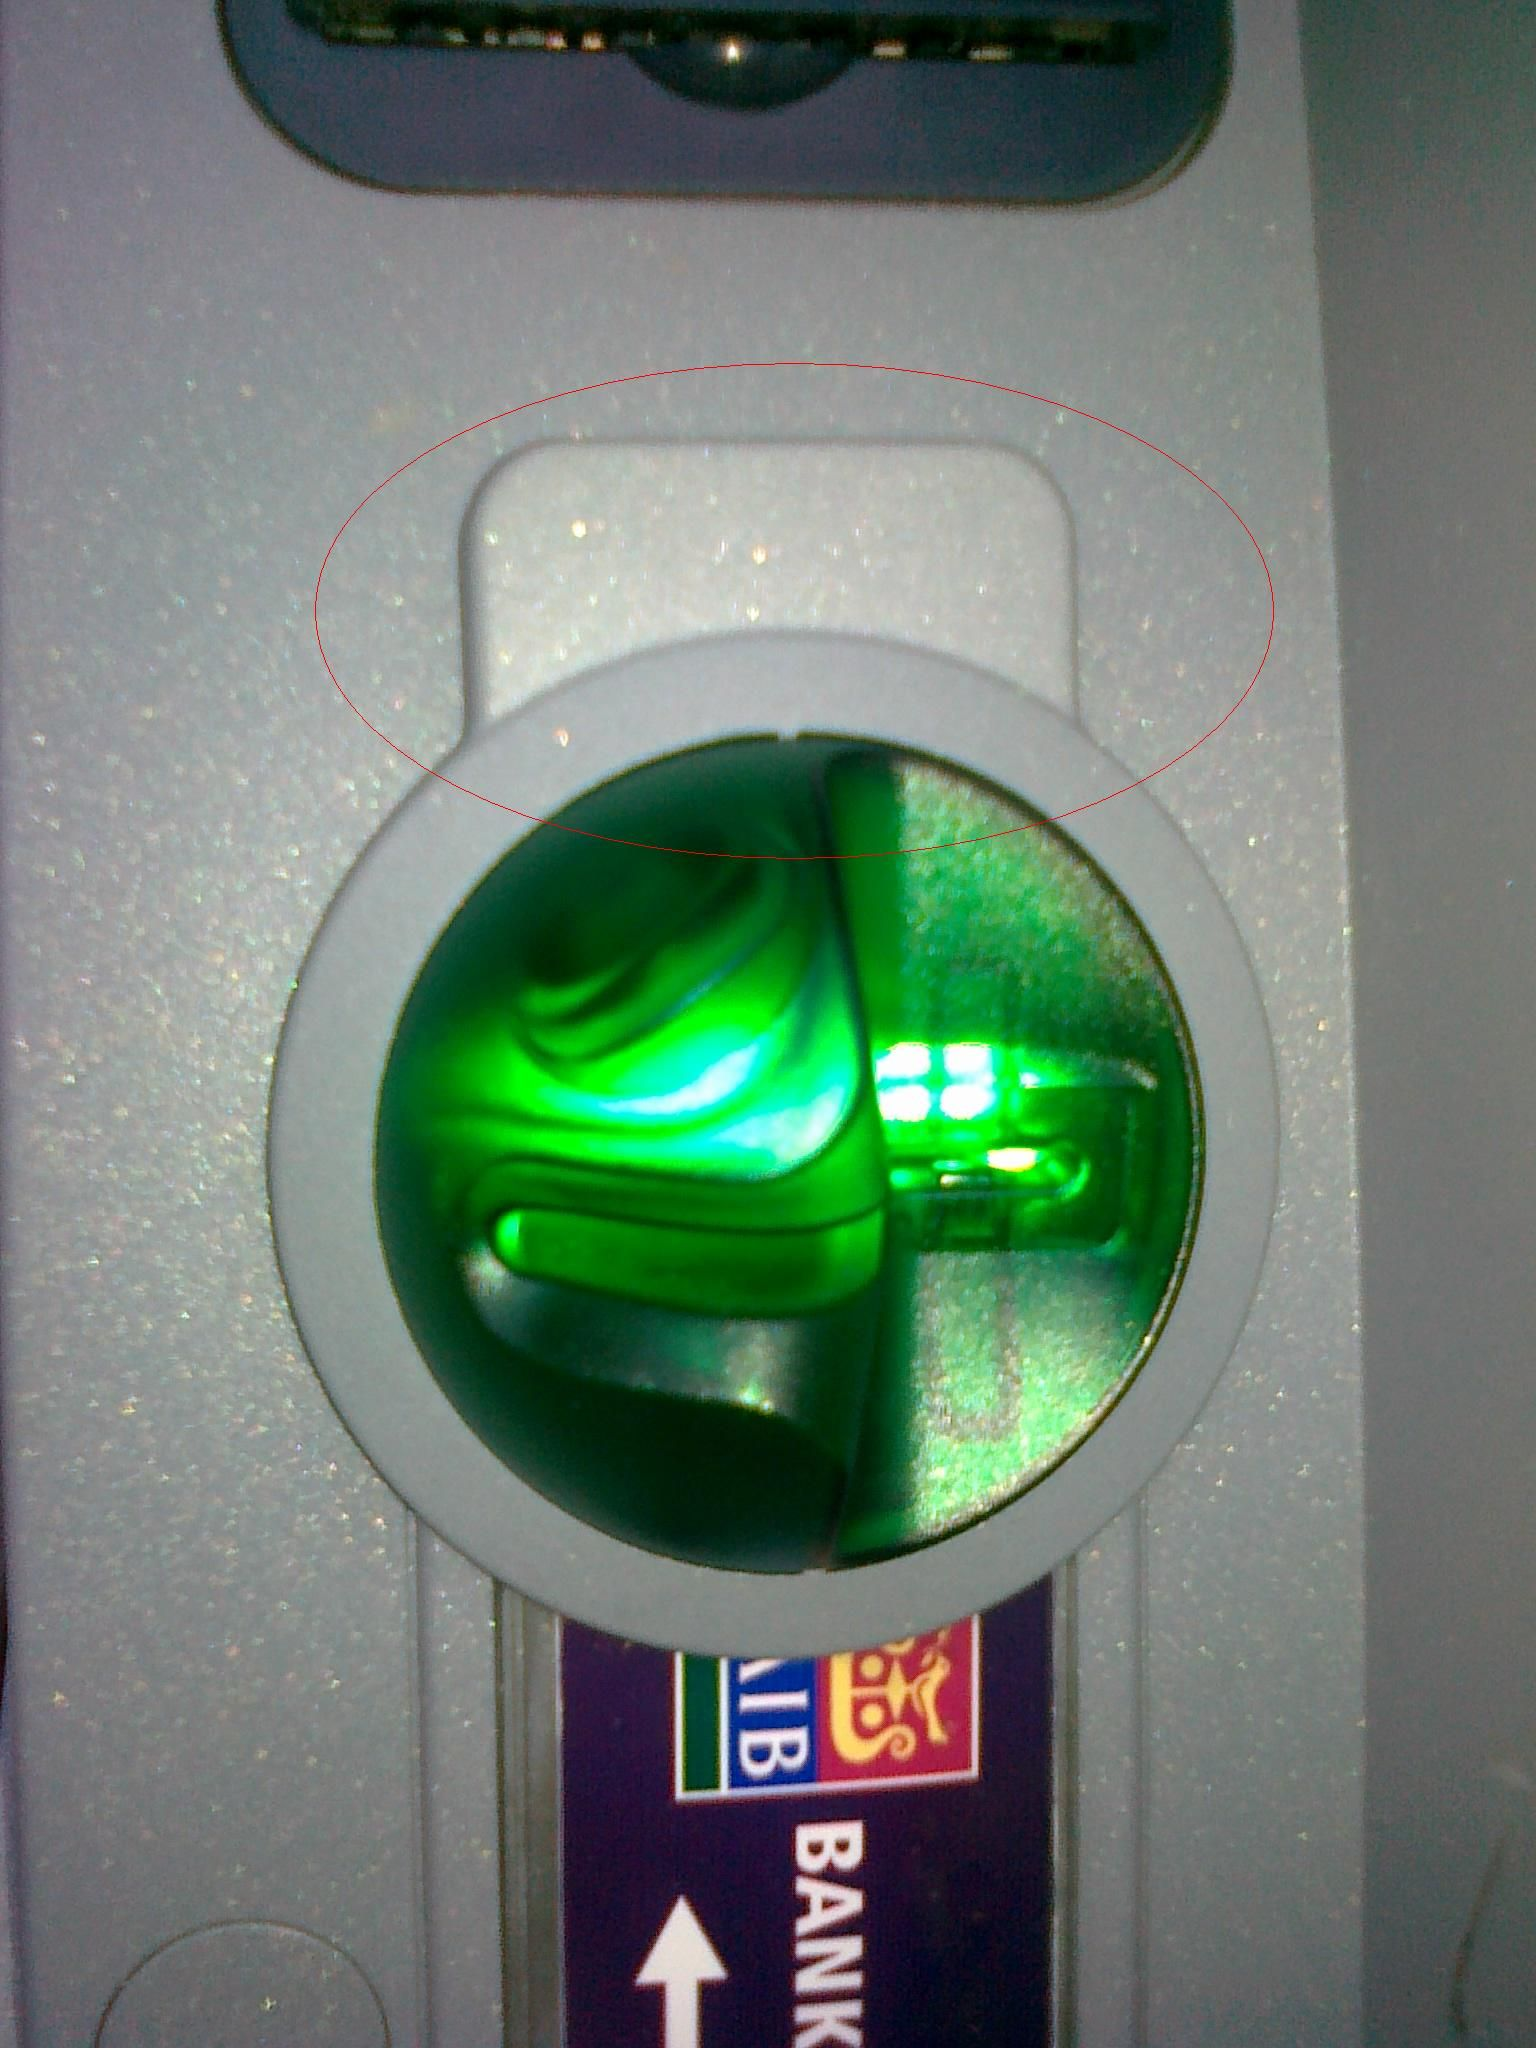 Attached AIB ATM skimming device